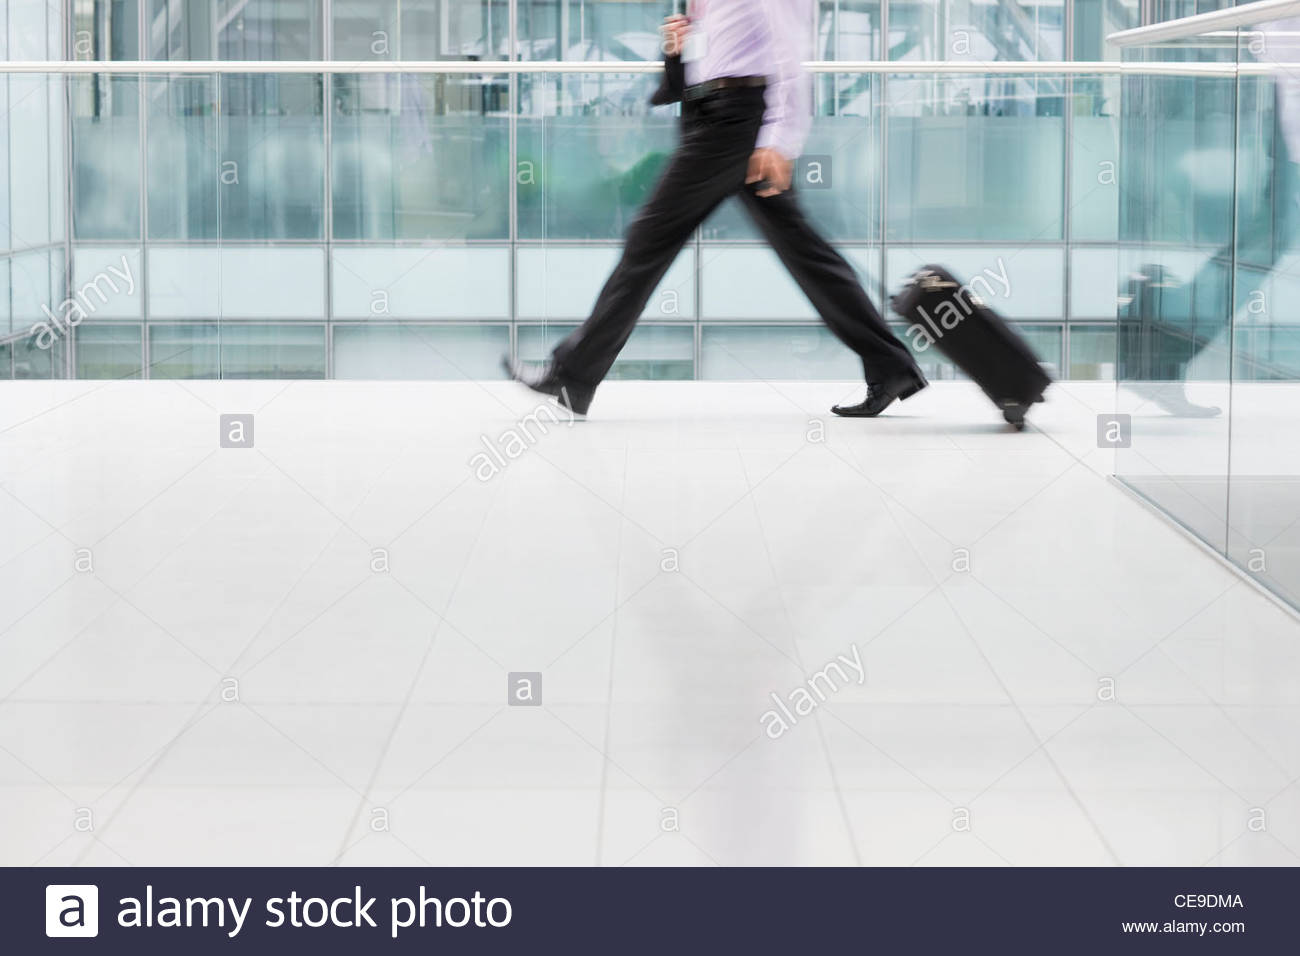 Businessman pulling suitcase in airport - Stock Image